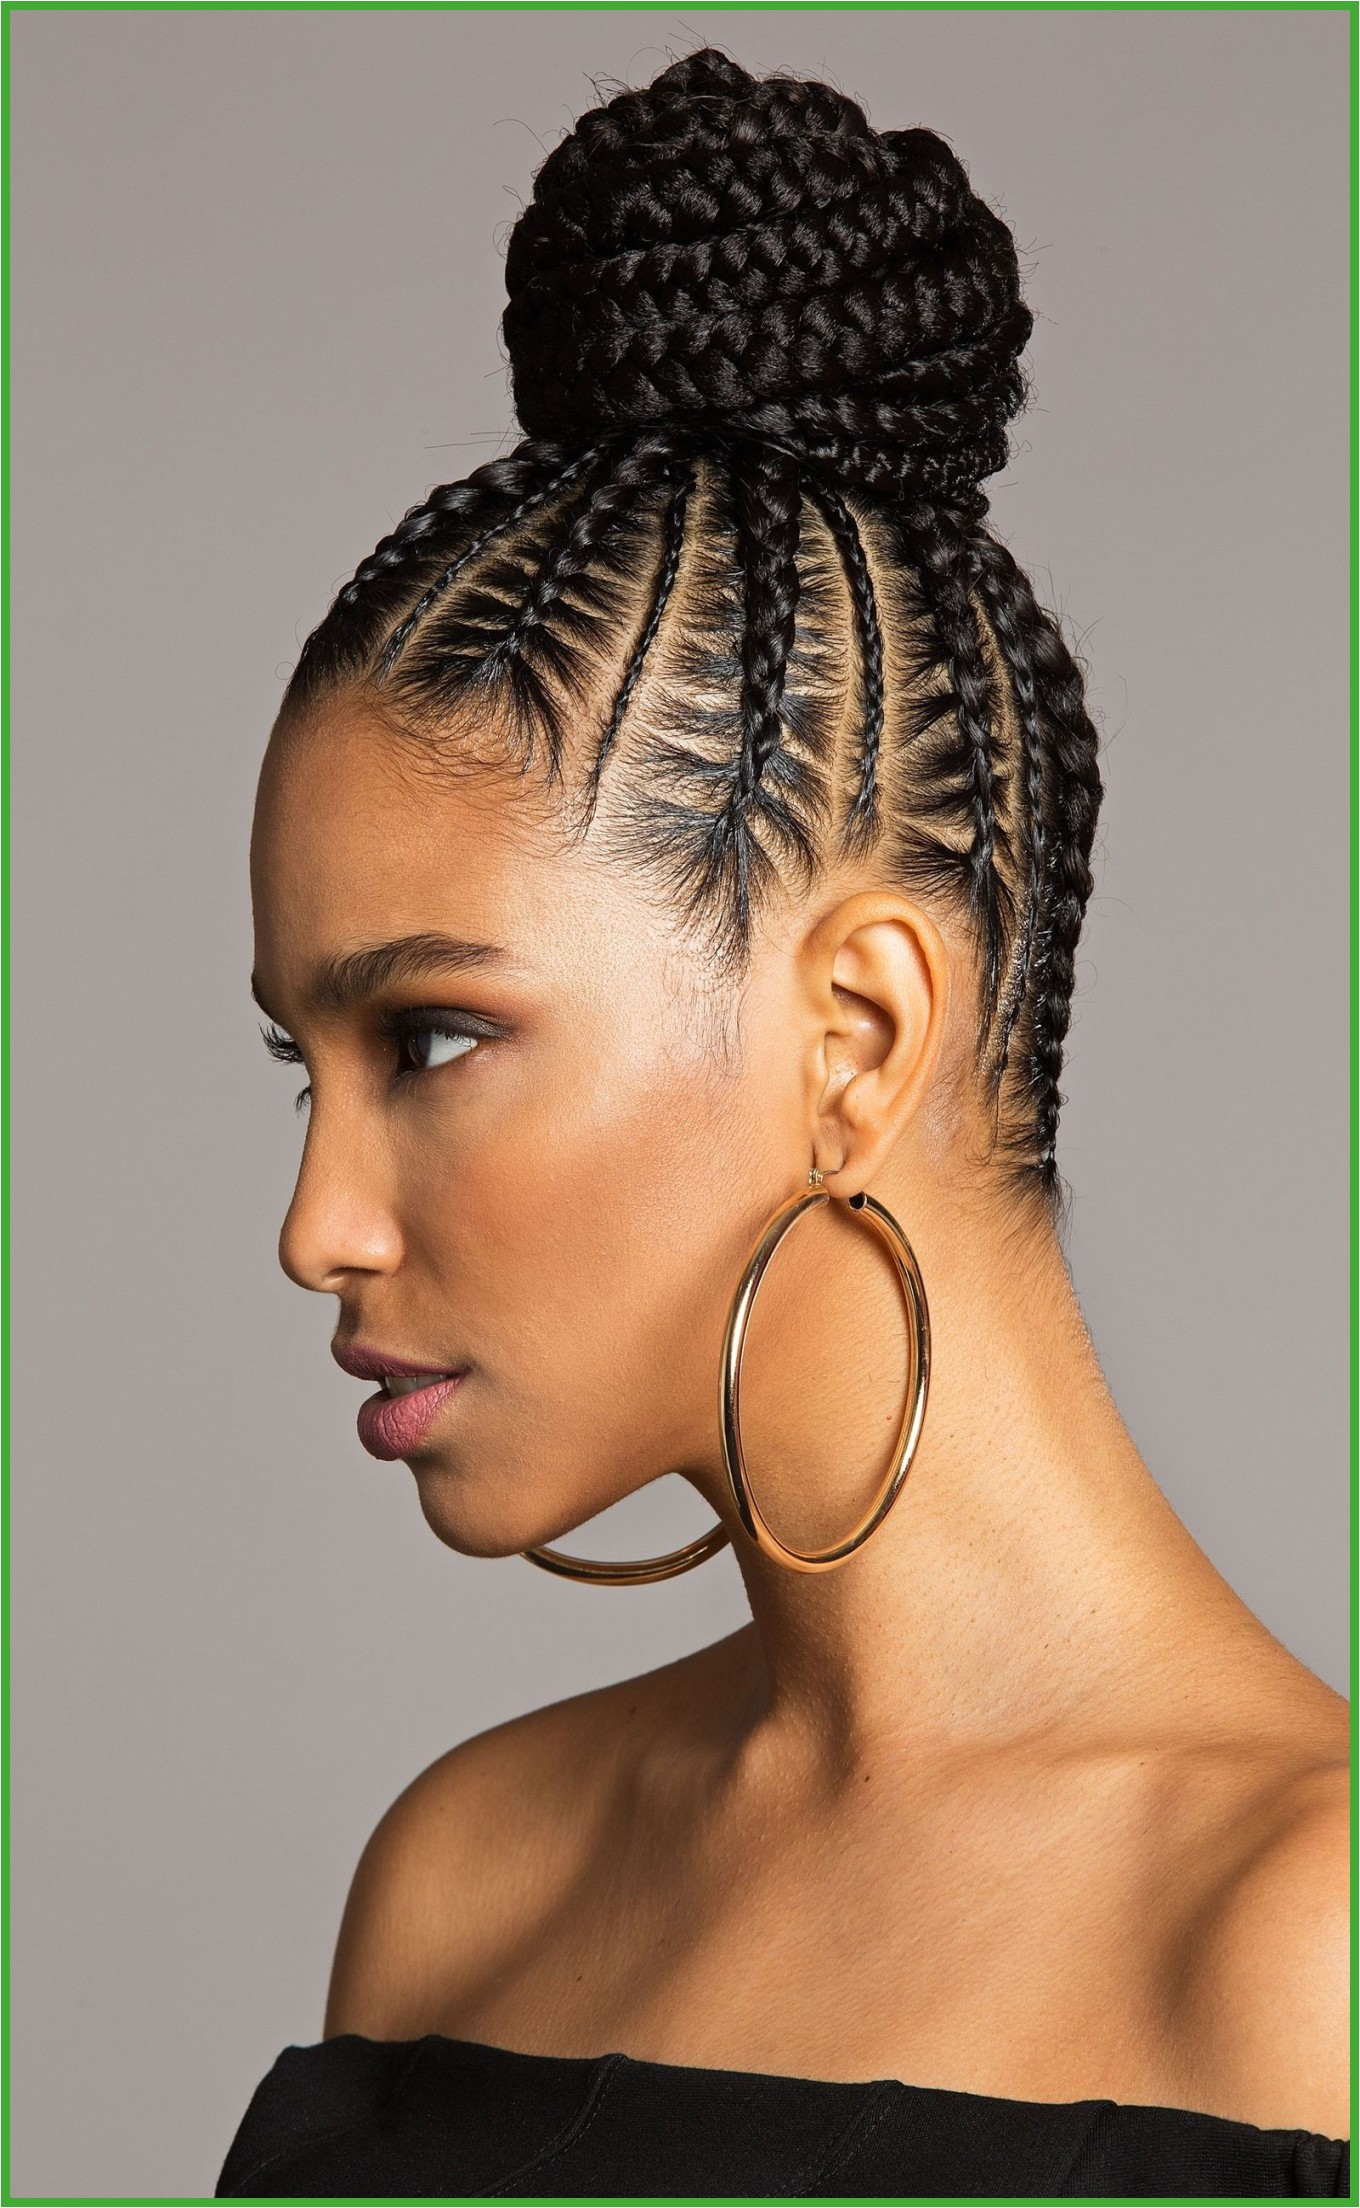 Braid Hairstyles Black Men You Re Going to Want to Wear This Bomb Braided Bun All Summer Long